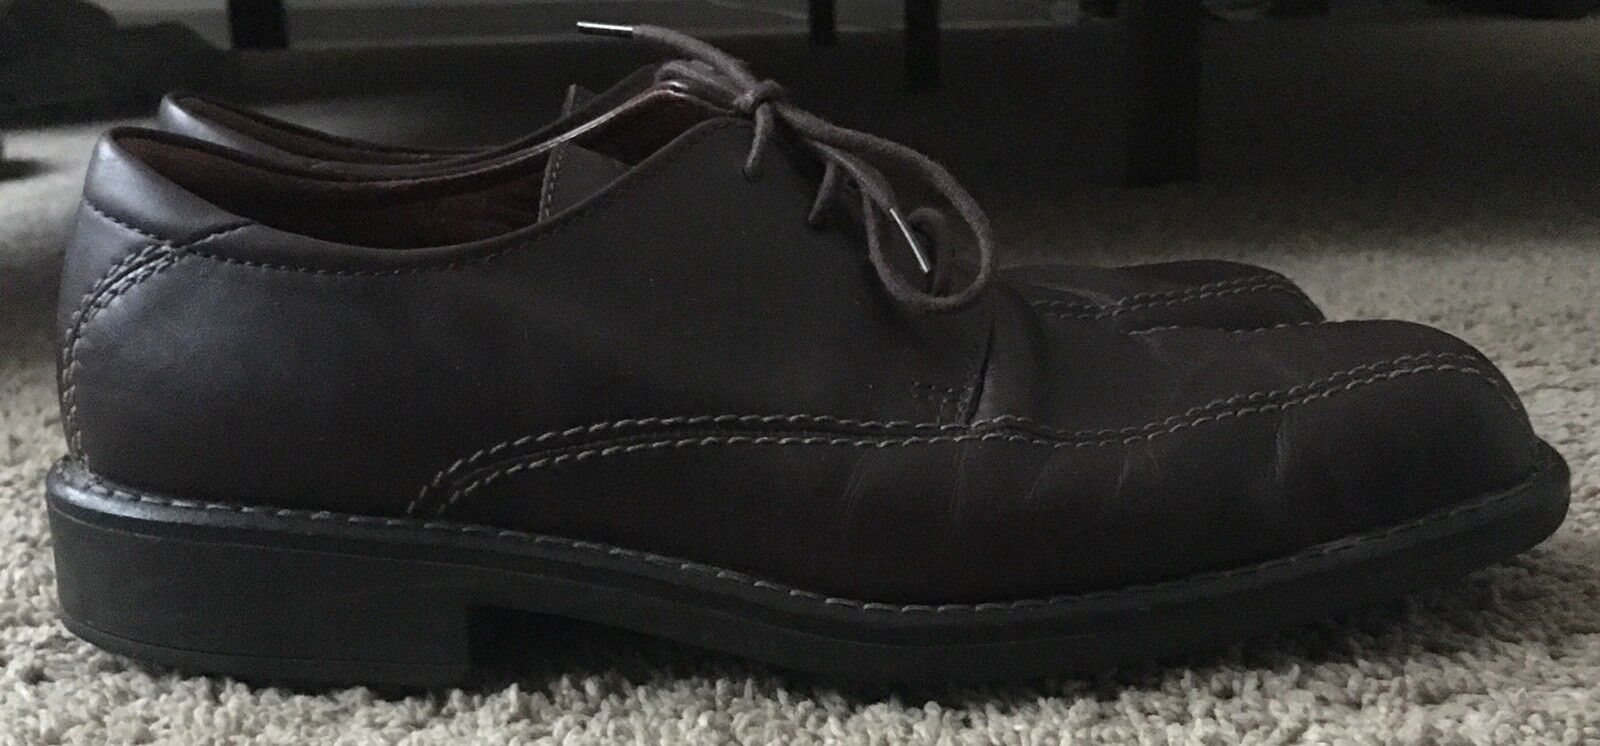 ECCO Men's Lace-up Oxford Casual shoes Sz 43 Euro US Sz 9.5  Brown Leather